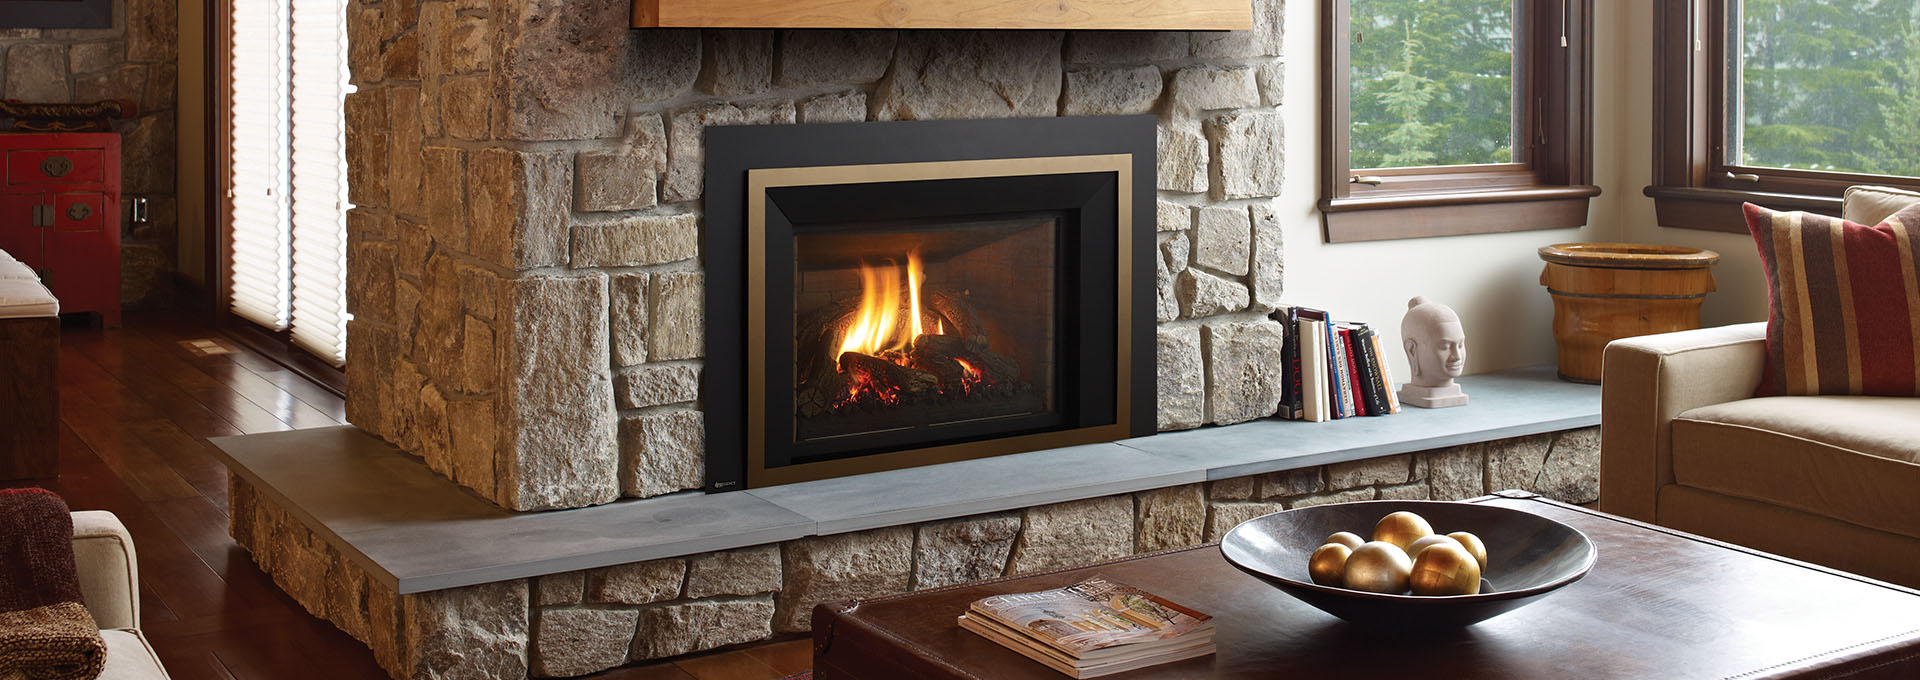 chateau mr images fireplace home